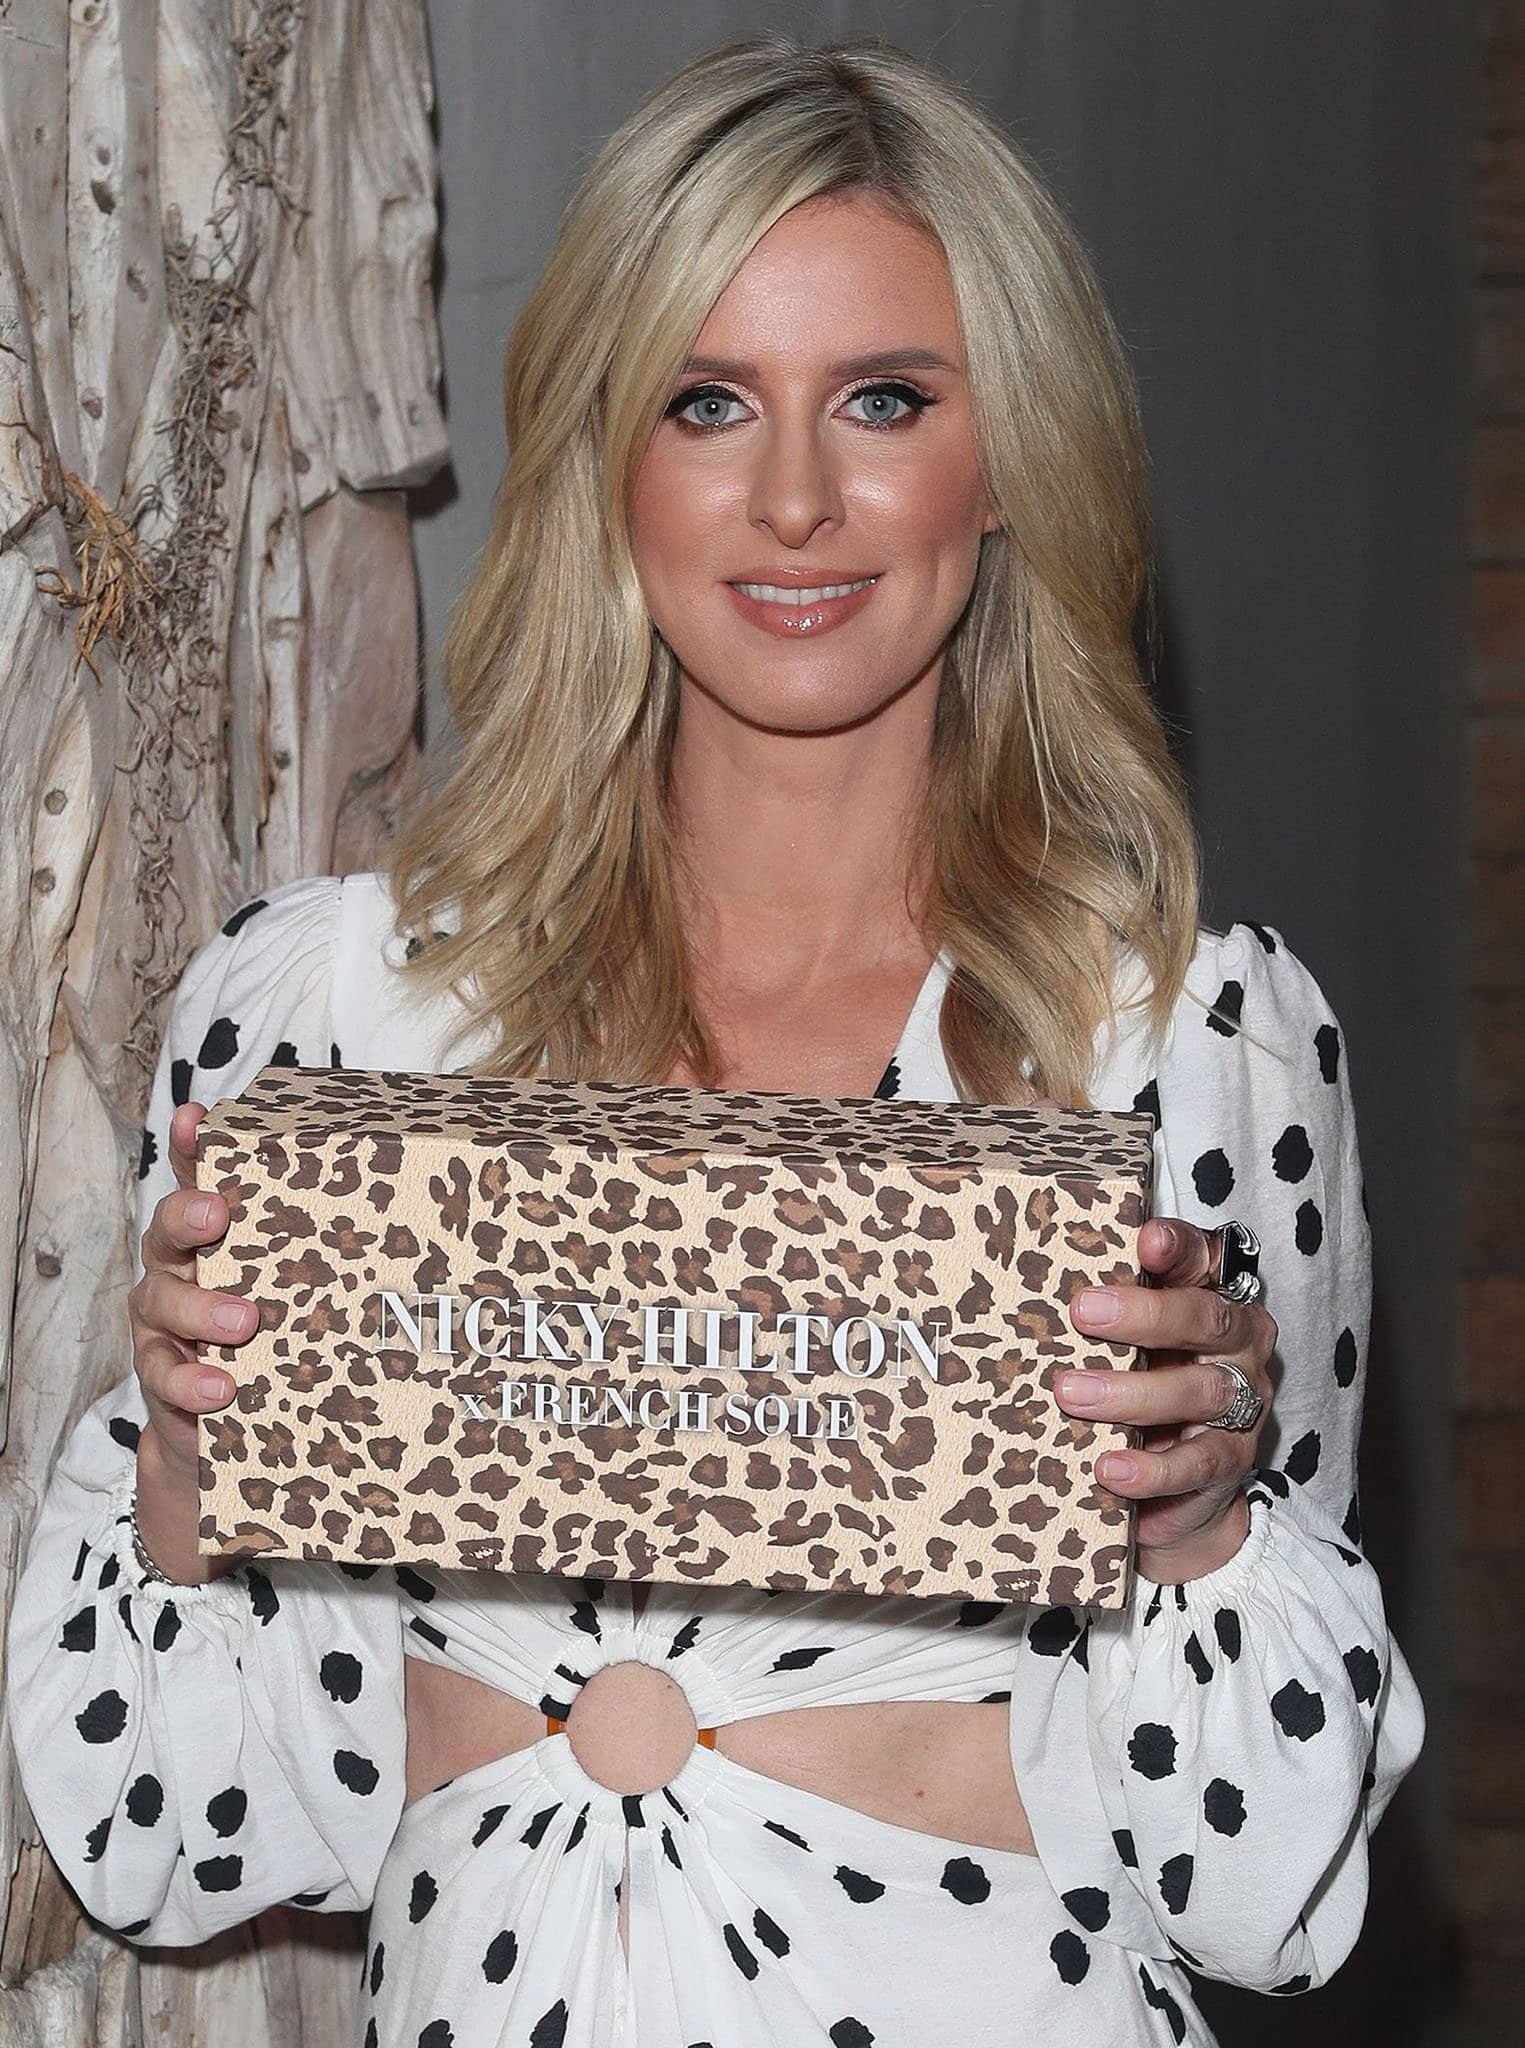 Nicky Hilton styles her hair in soft waves and wears peachy lipgloss with metallic pink eyeshadow and blush